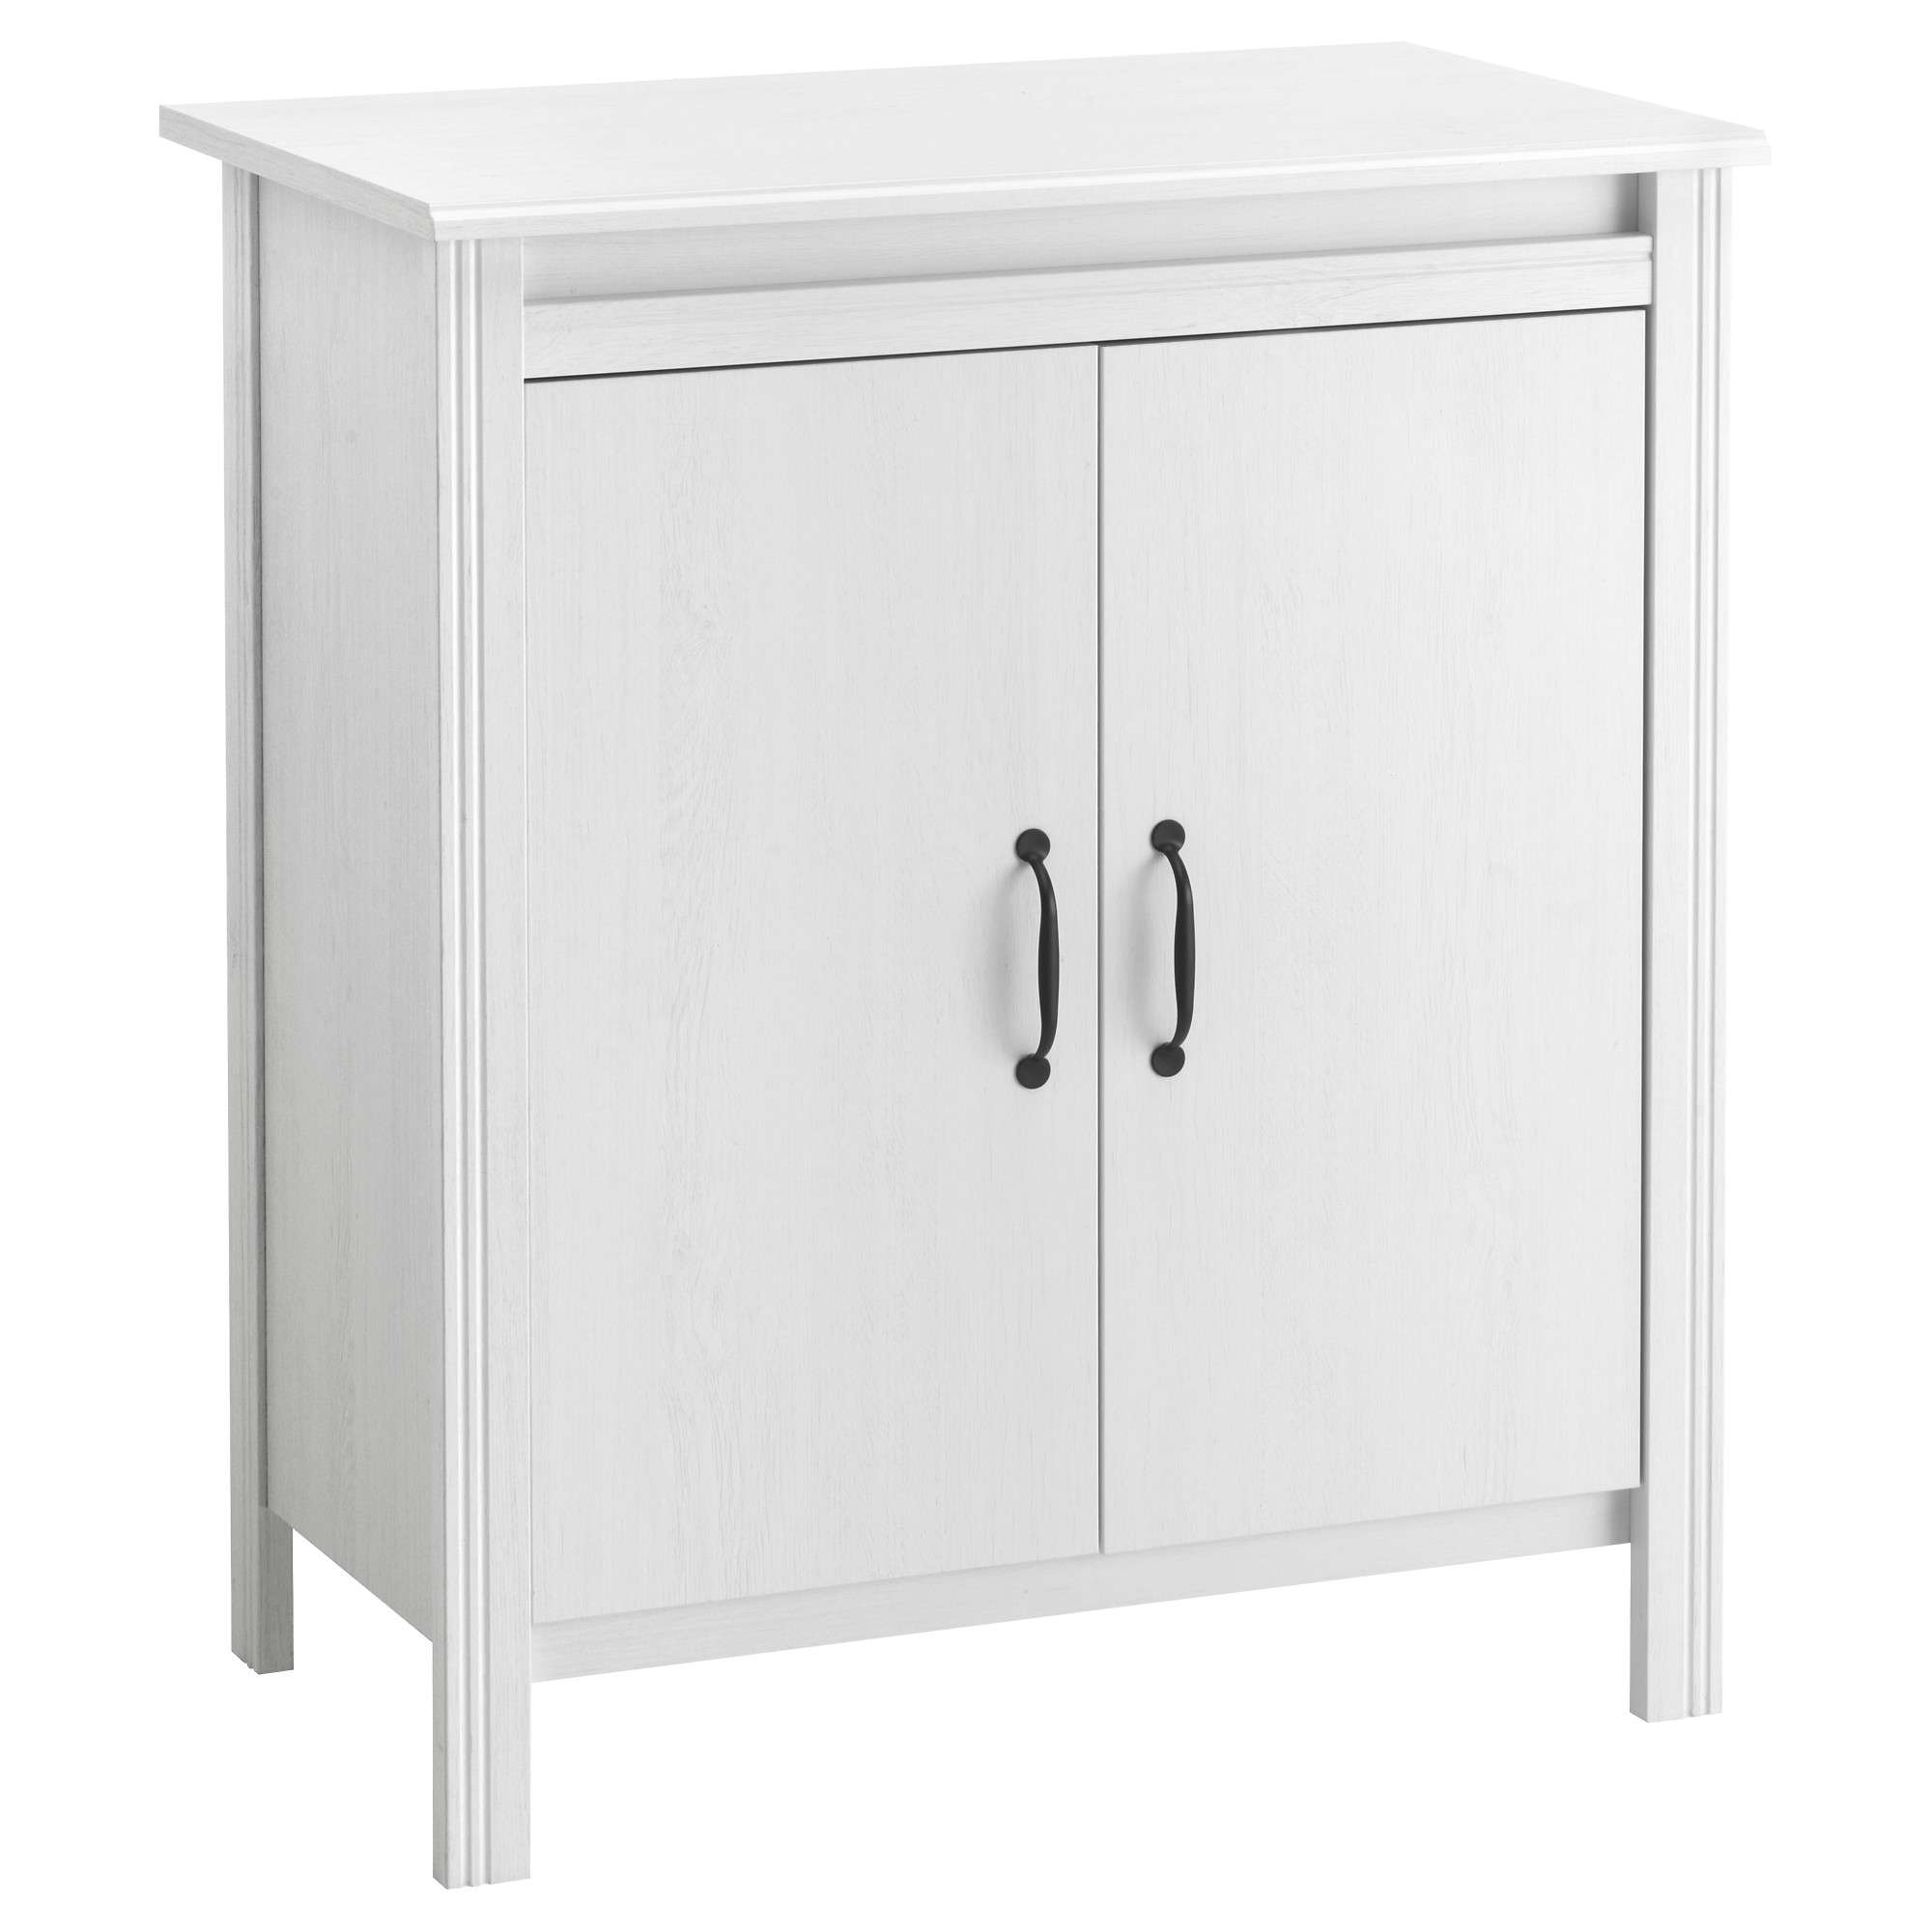 Storage Cabinets & Storage Cupboards | Ikea In White Gloss Ikea Sideboards (View 14 of 20)